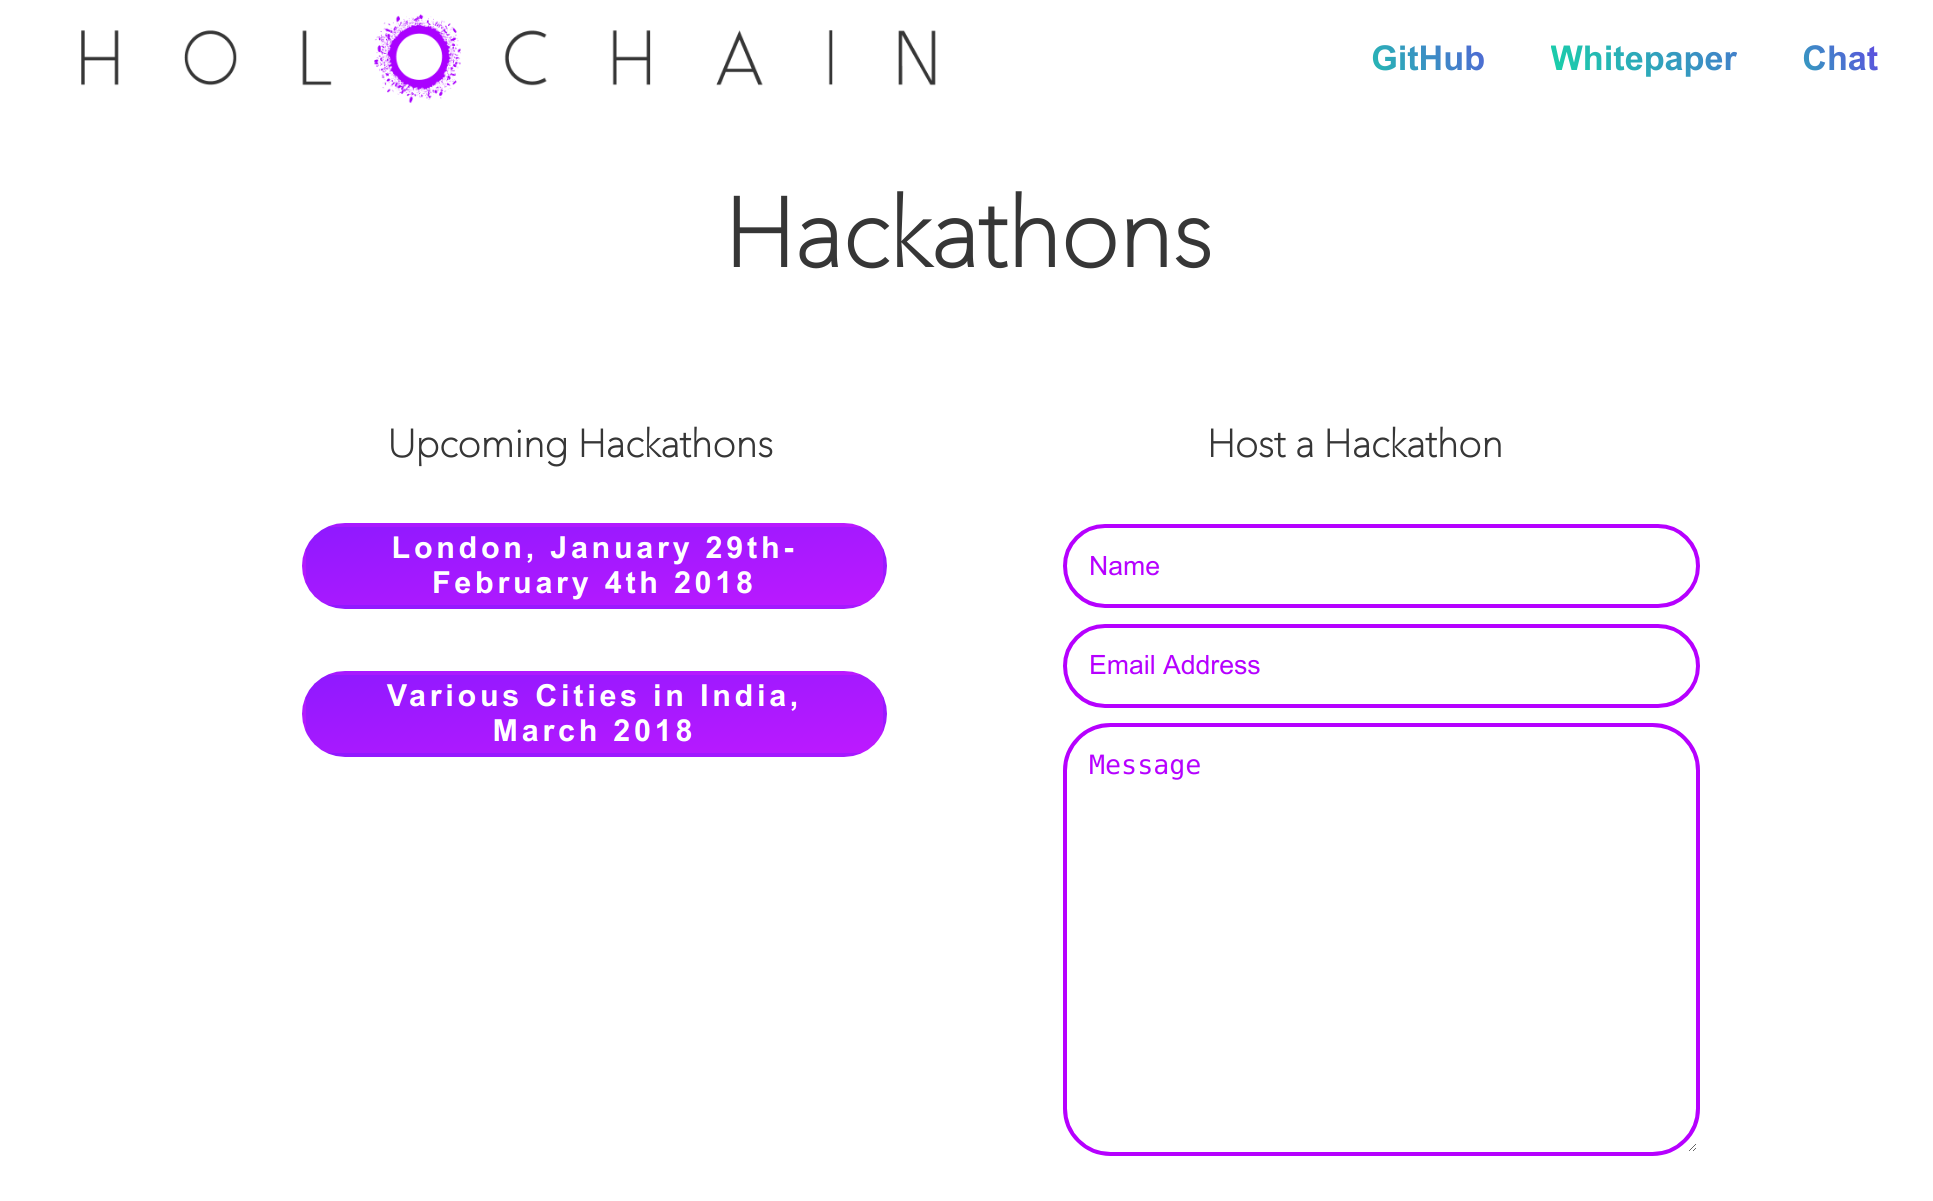 screenshot of hackathon schedule